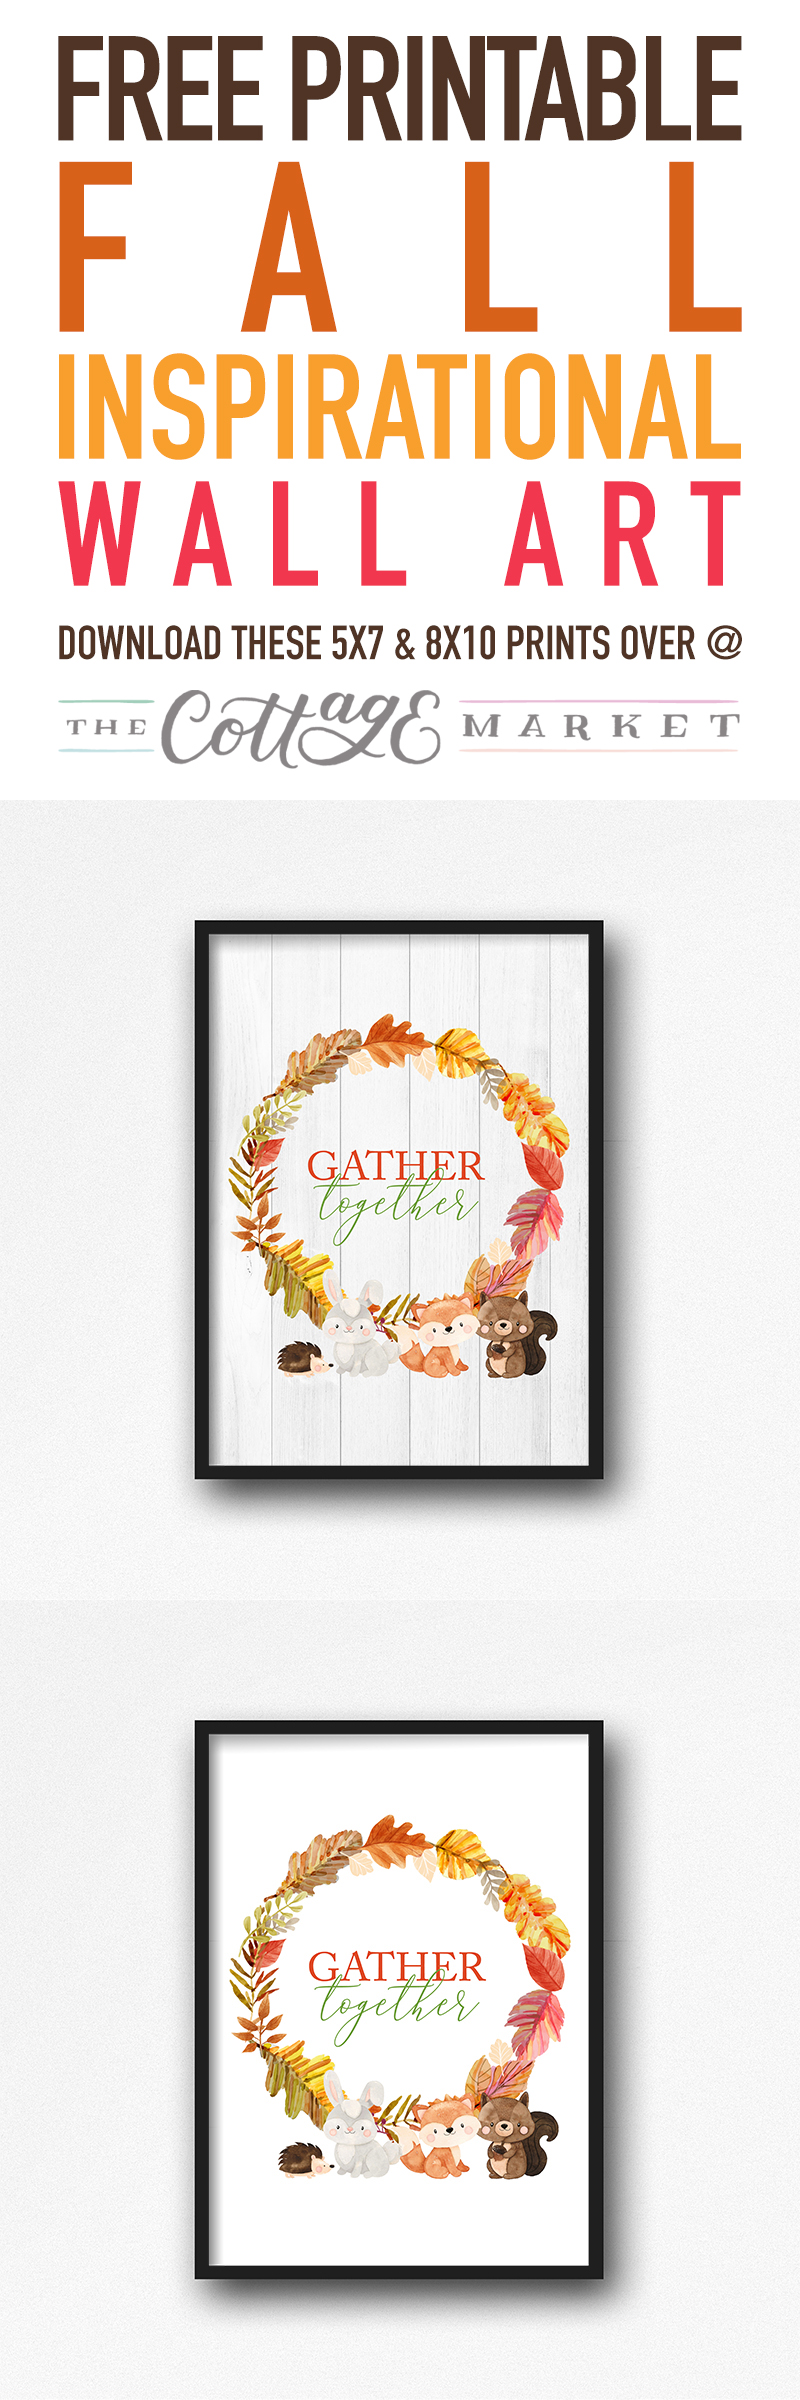 Time to enjoy some whimsical Woodland Creatures in this lovely Free Printable Fall Inspirational Wall Art that will look fabulous throughout the whole Fall Season